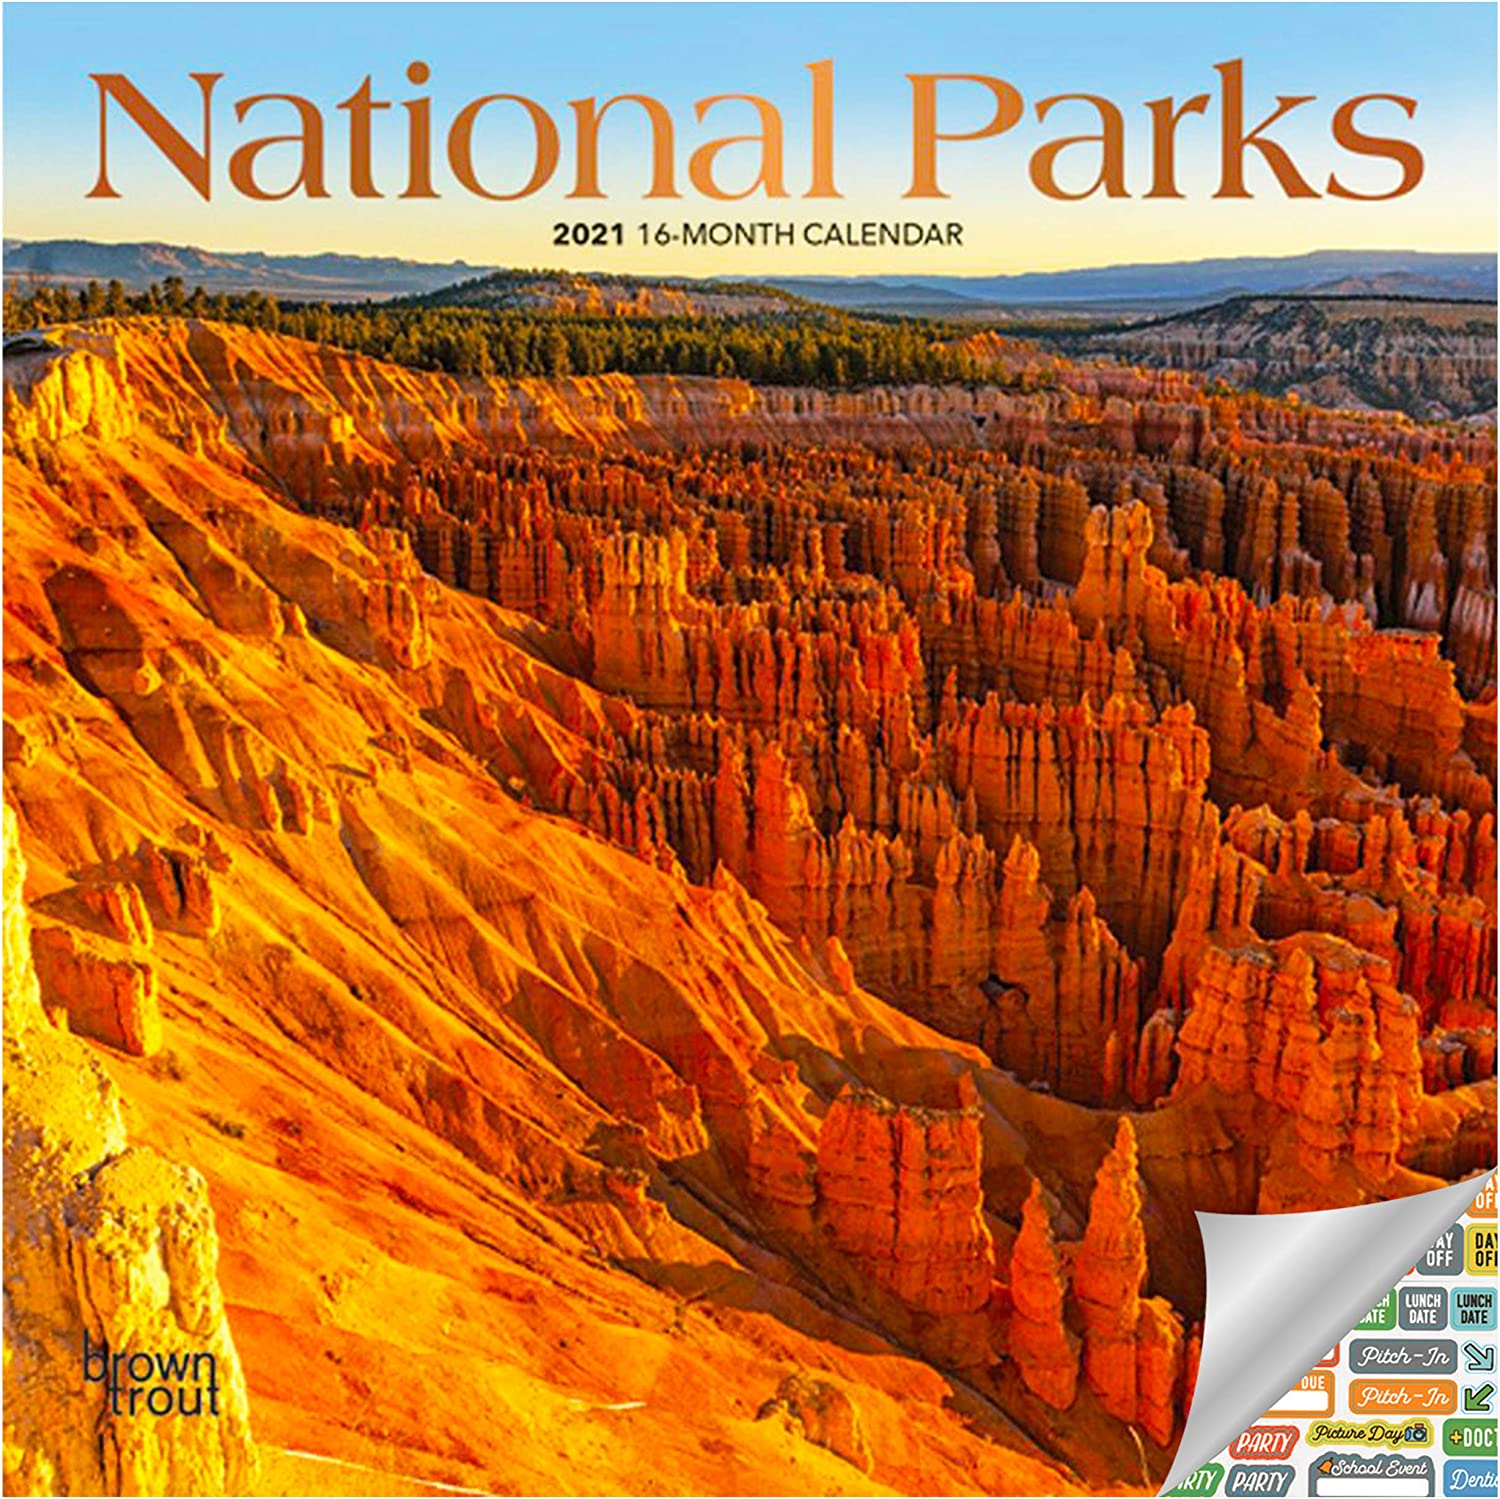 National Parks Calendar 2021 Bundle - Deluxe 2021 Parks Mini Calendar with Over 100 Calendar Stickers (America's National Parks Gifts, Office Supplies)